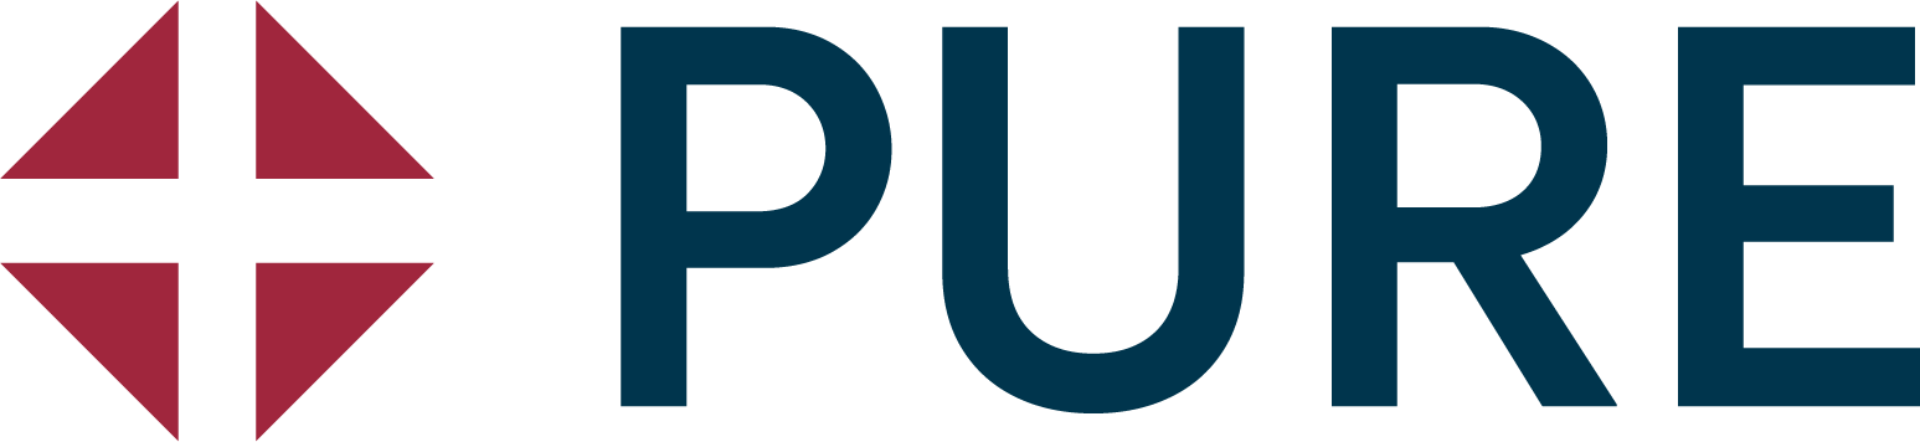 PURE Funds AG